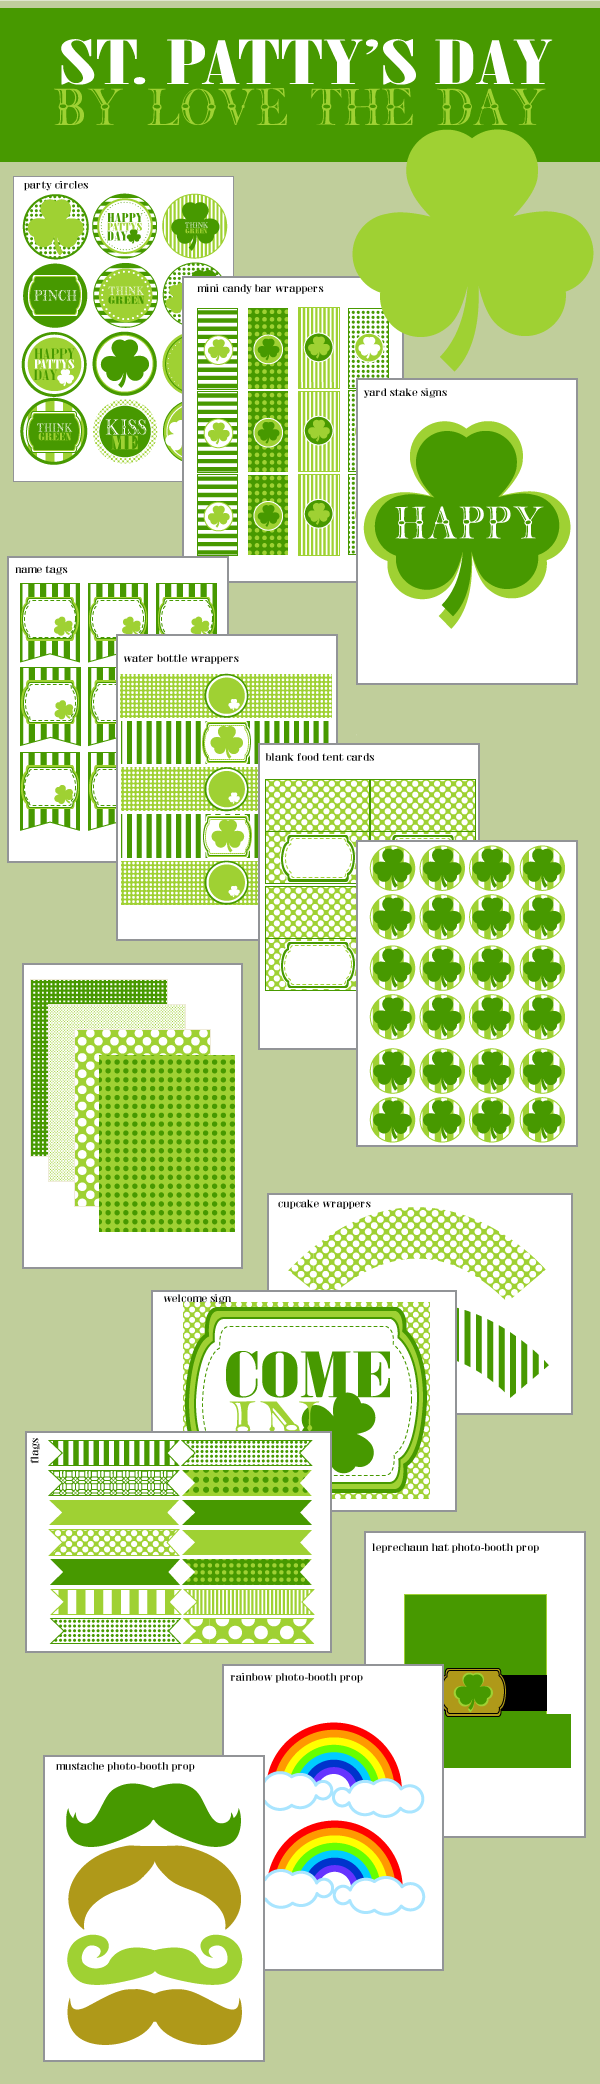 Free St. Patty's Day printables! I love the cute flags!